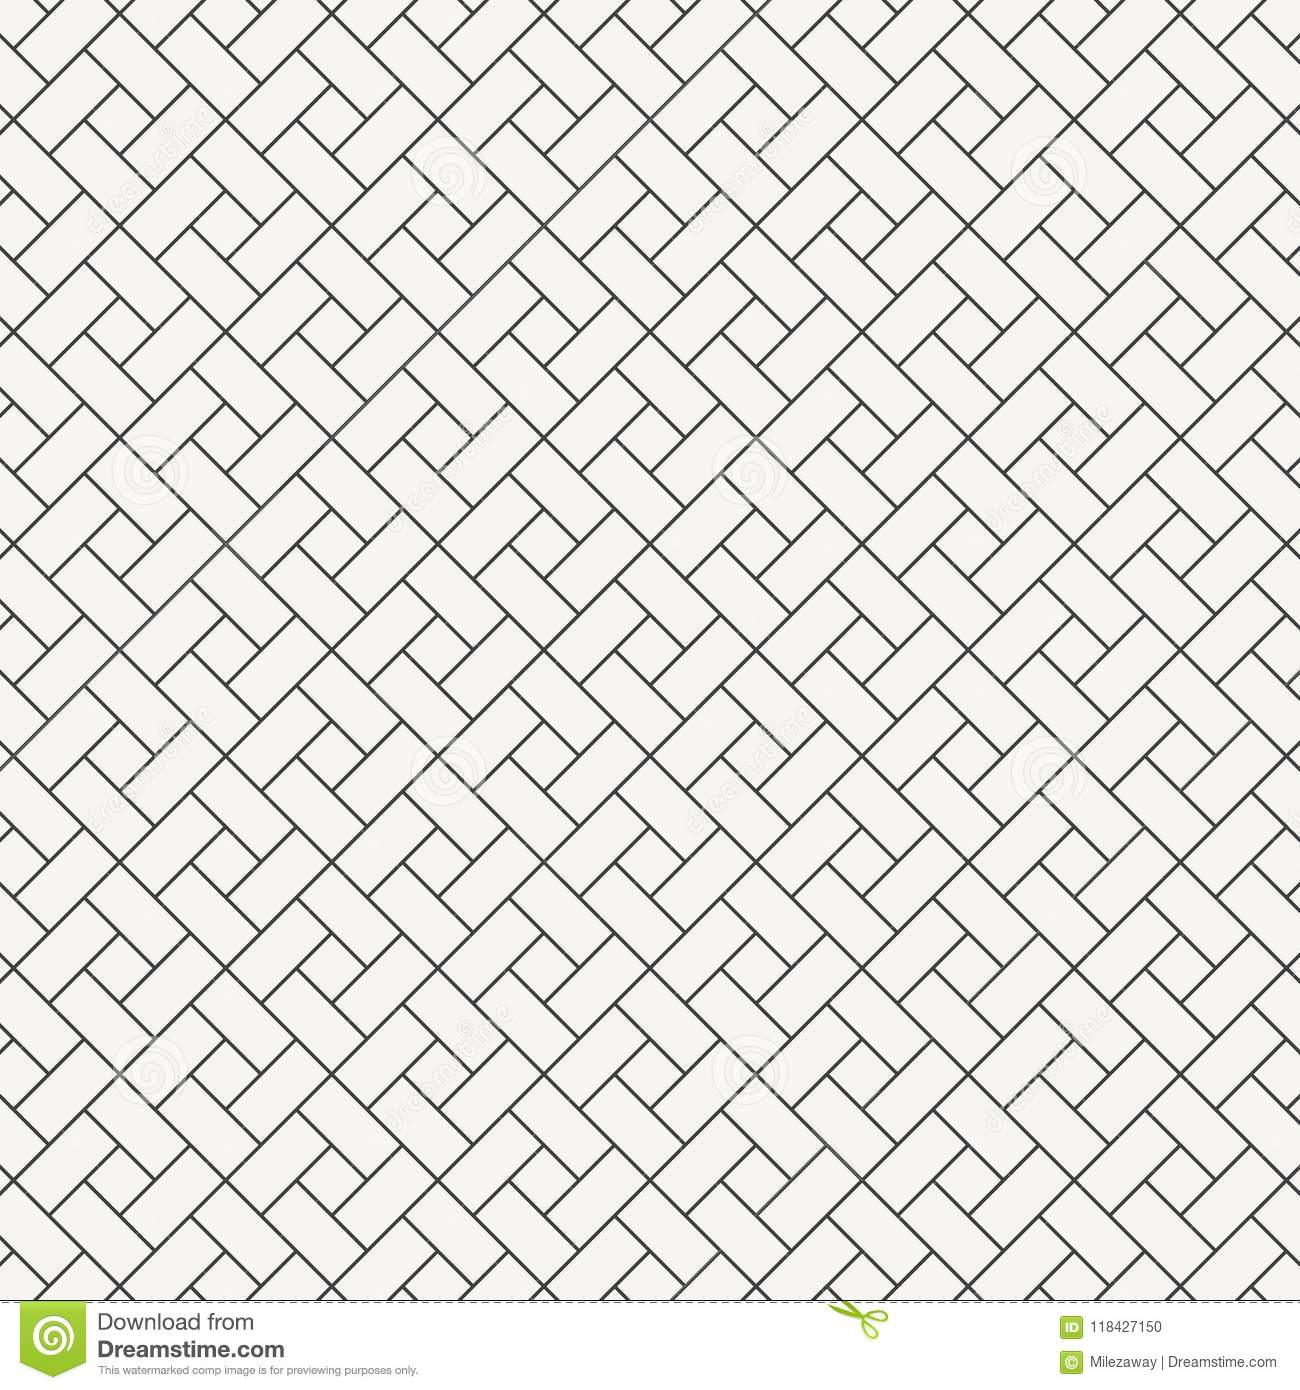 Vector Pattern Design Square Diamond Shape. Repeating With